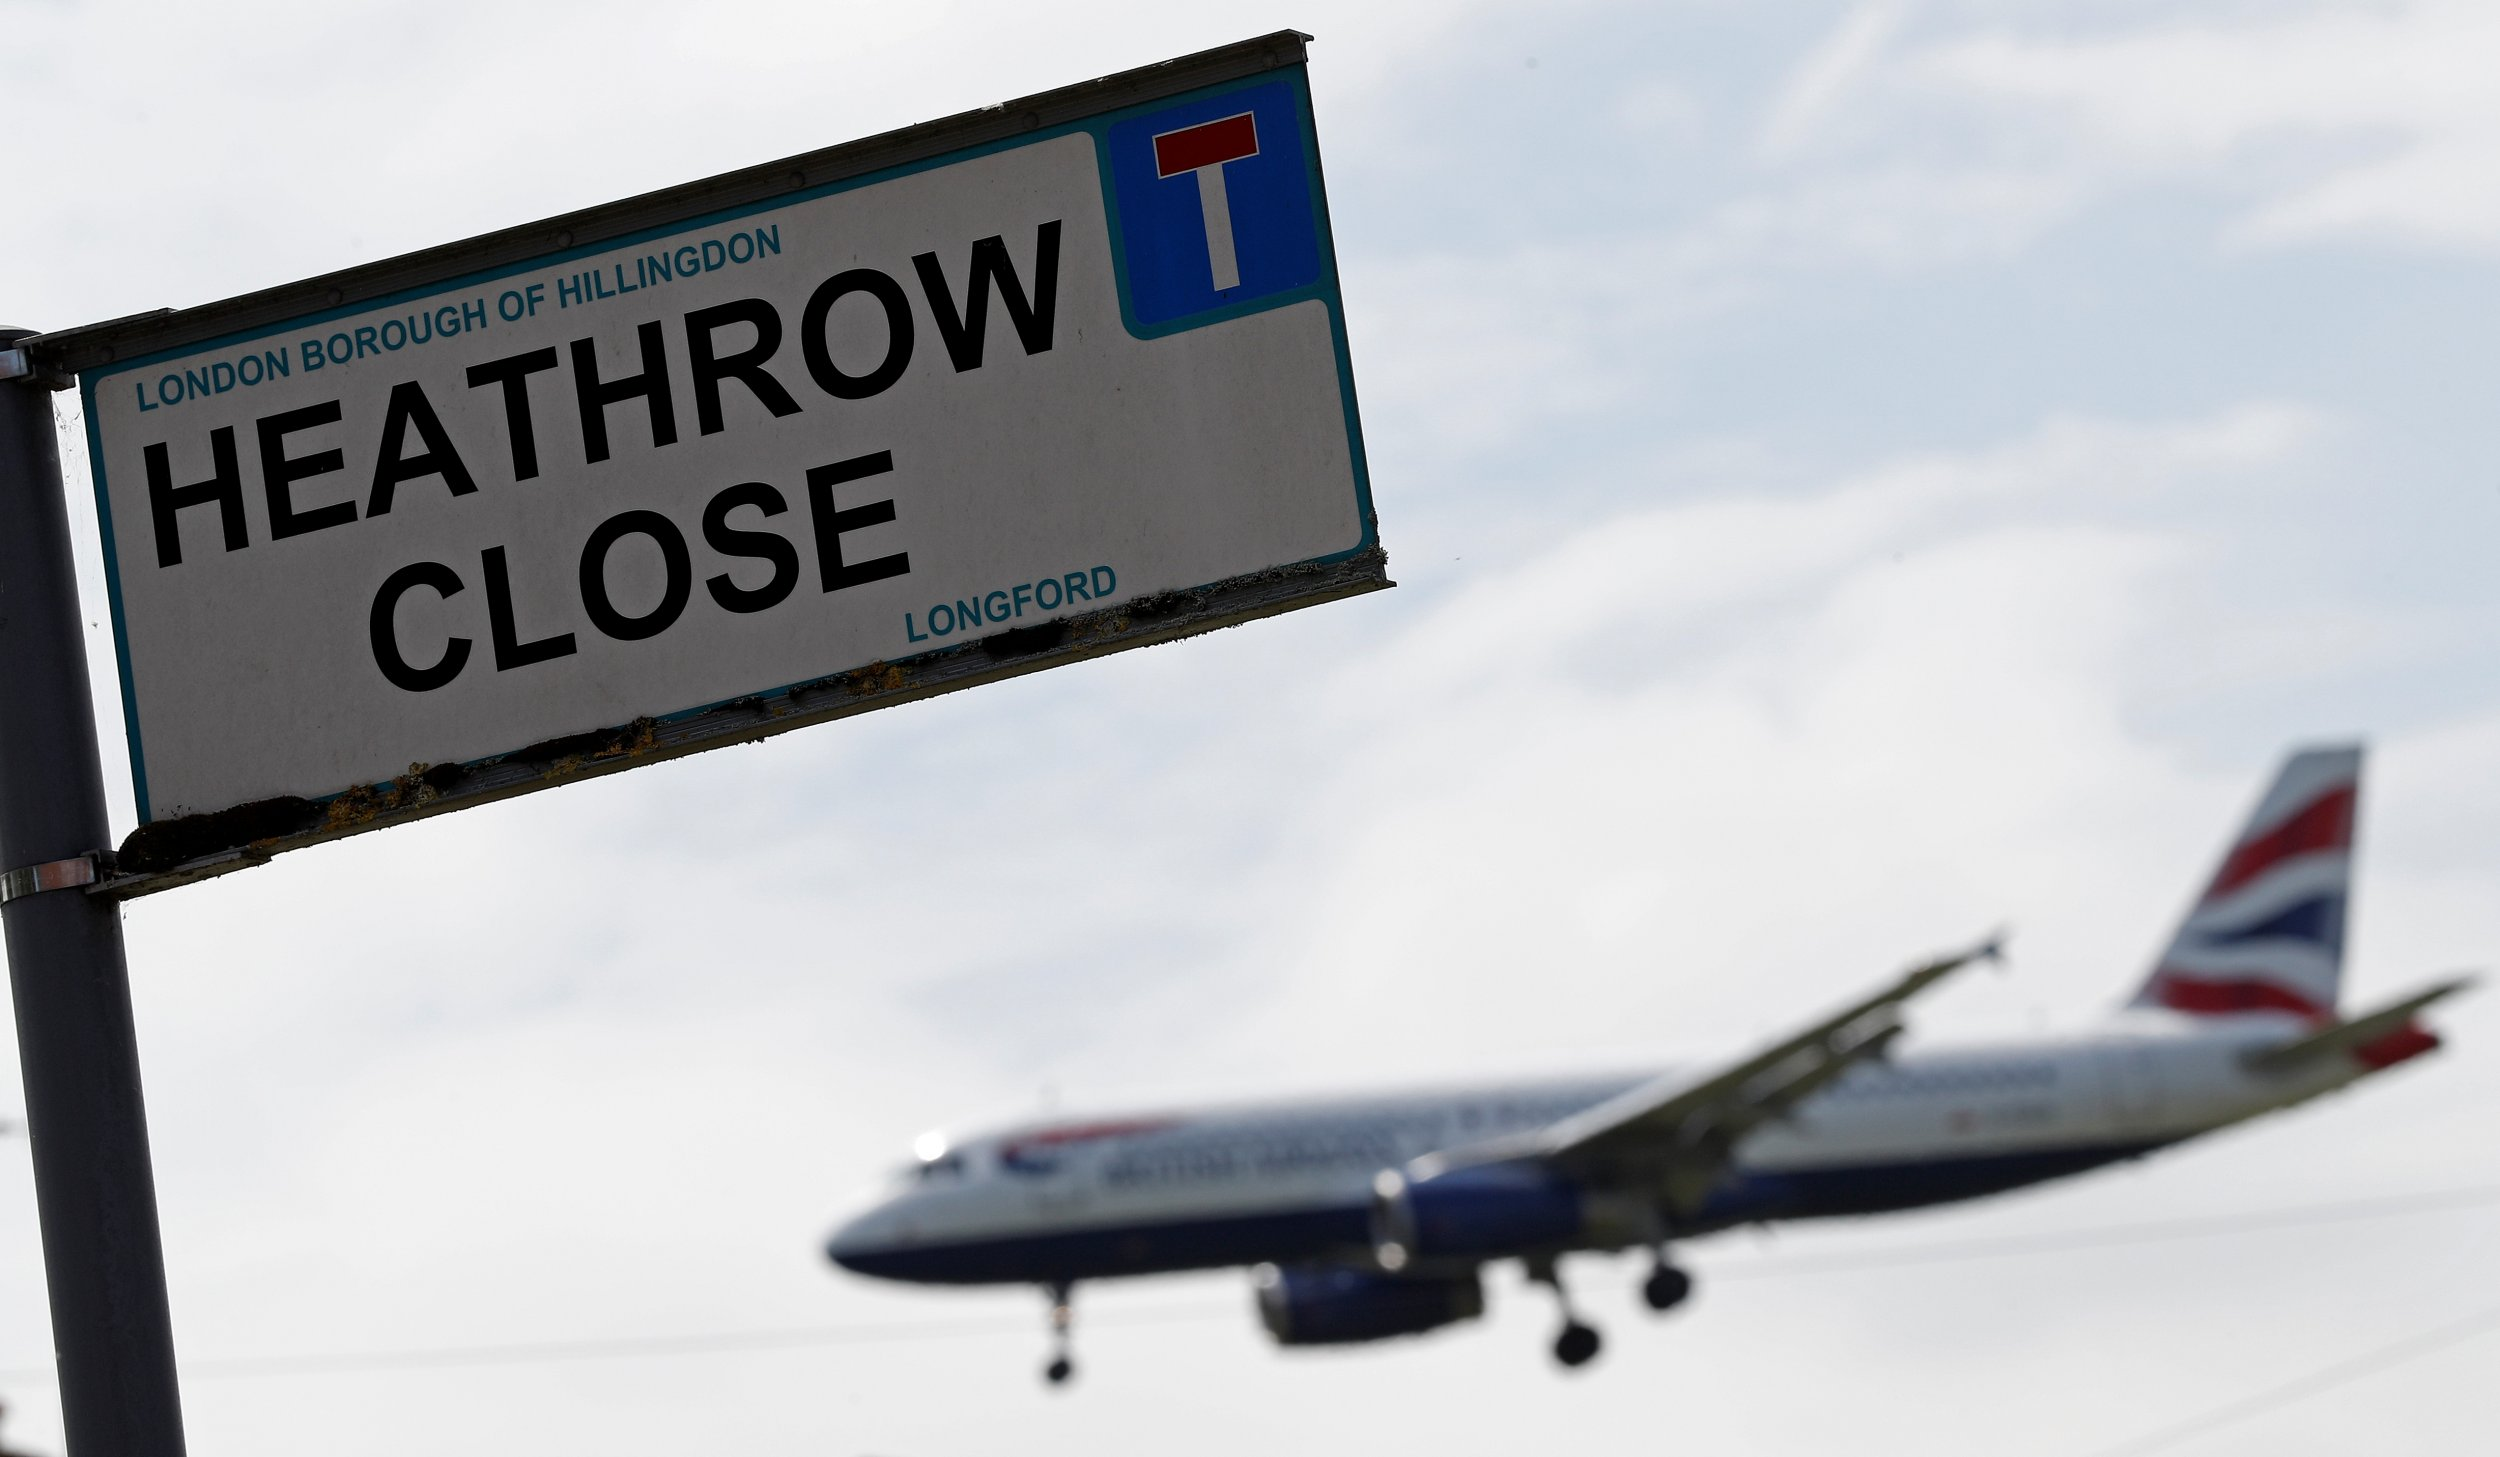 Heathrow Airport Shut Down Due to Power Outage: Report